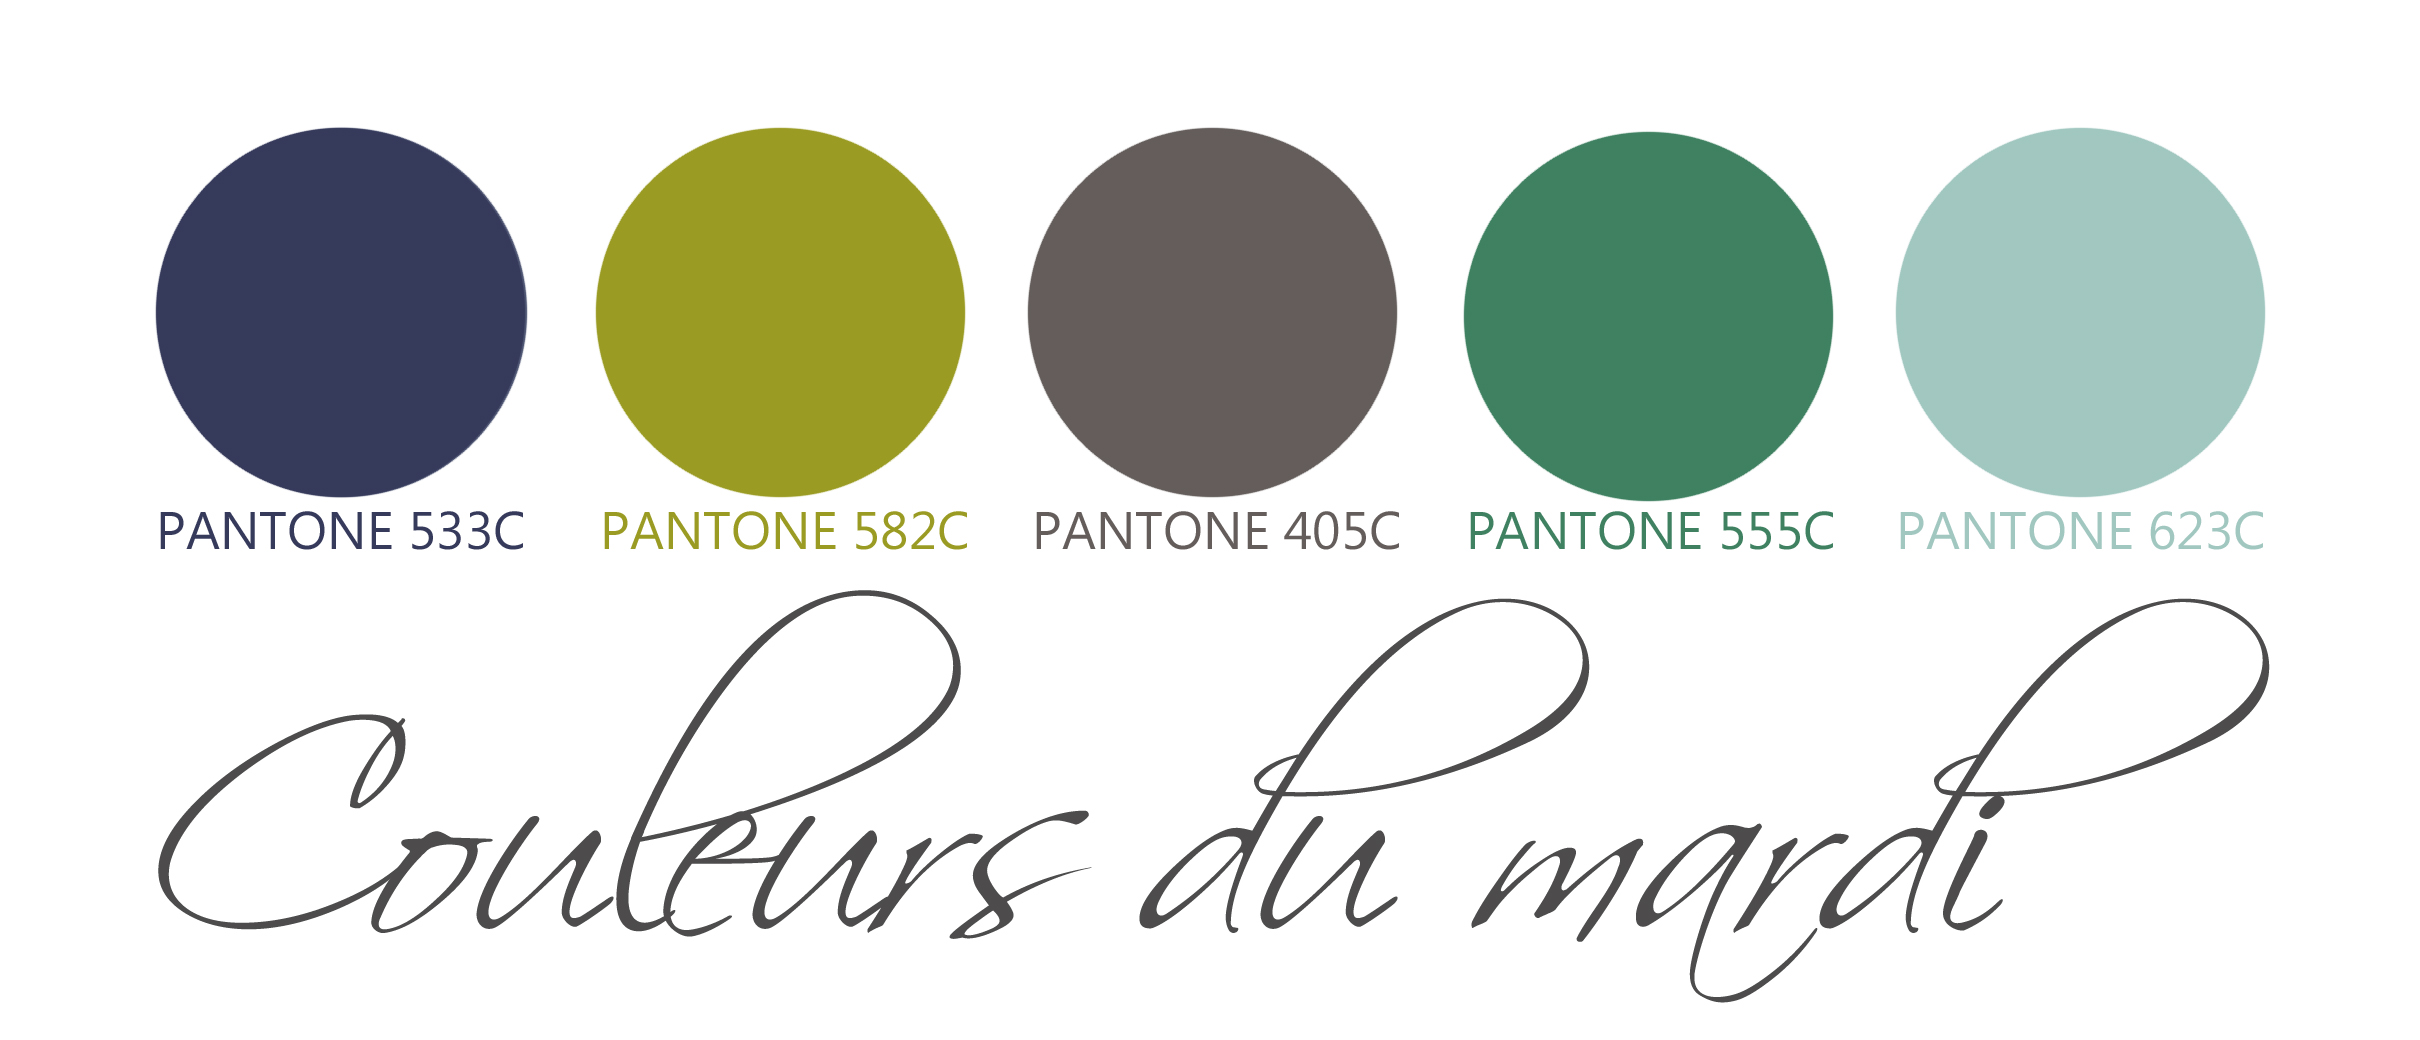 Inspiration couleurs pigments kesi 39 art le blog - Associations de couleurs ...